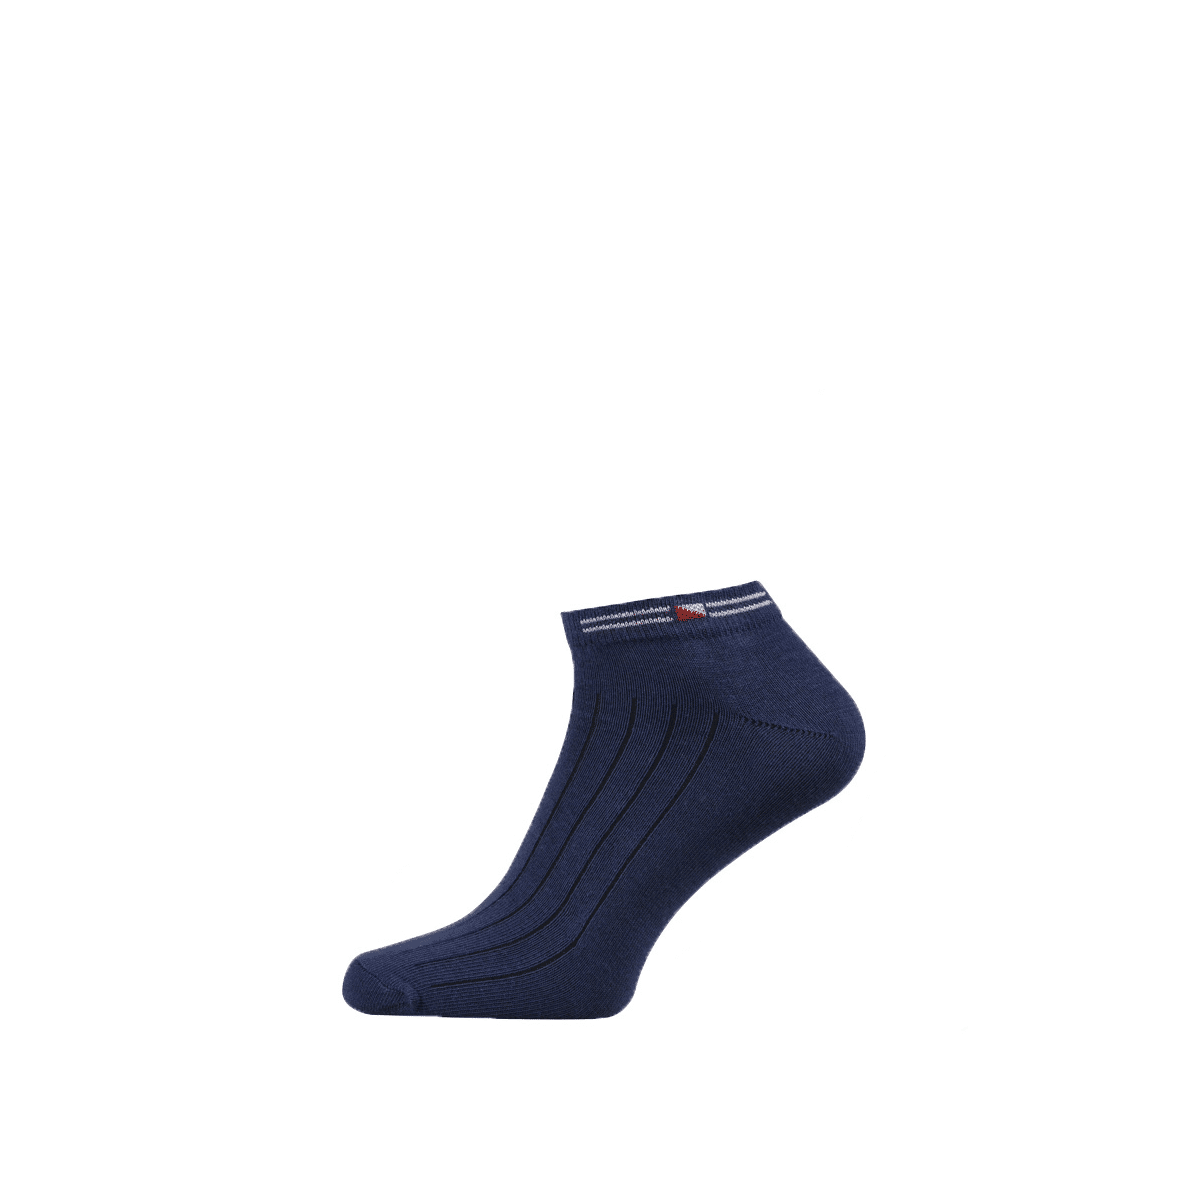 Cotton Ankle Socks for Men and Boys Navy Blue